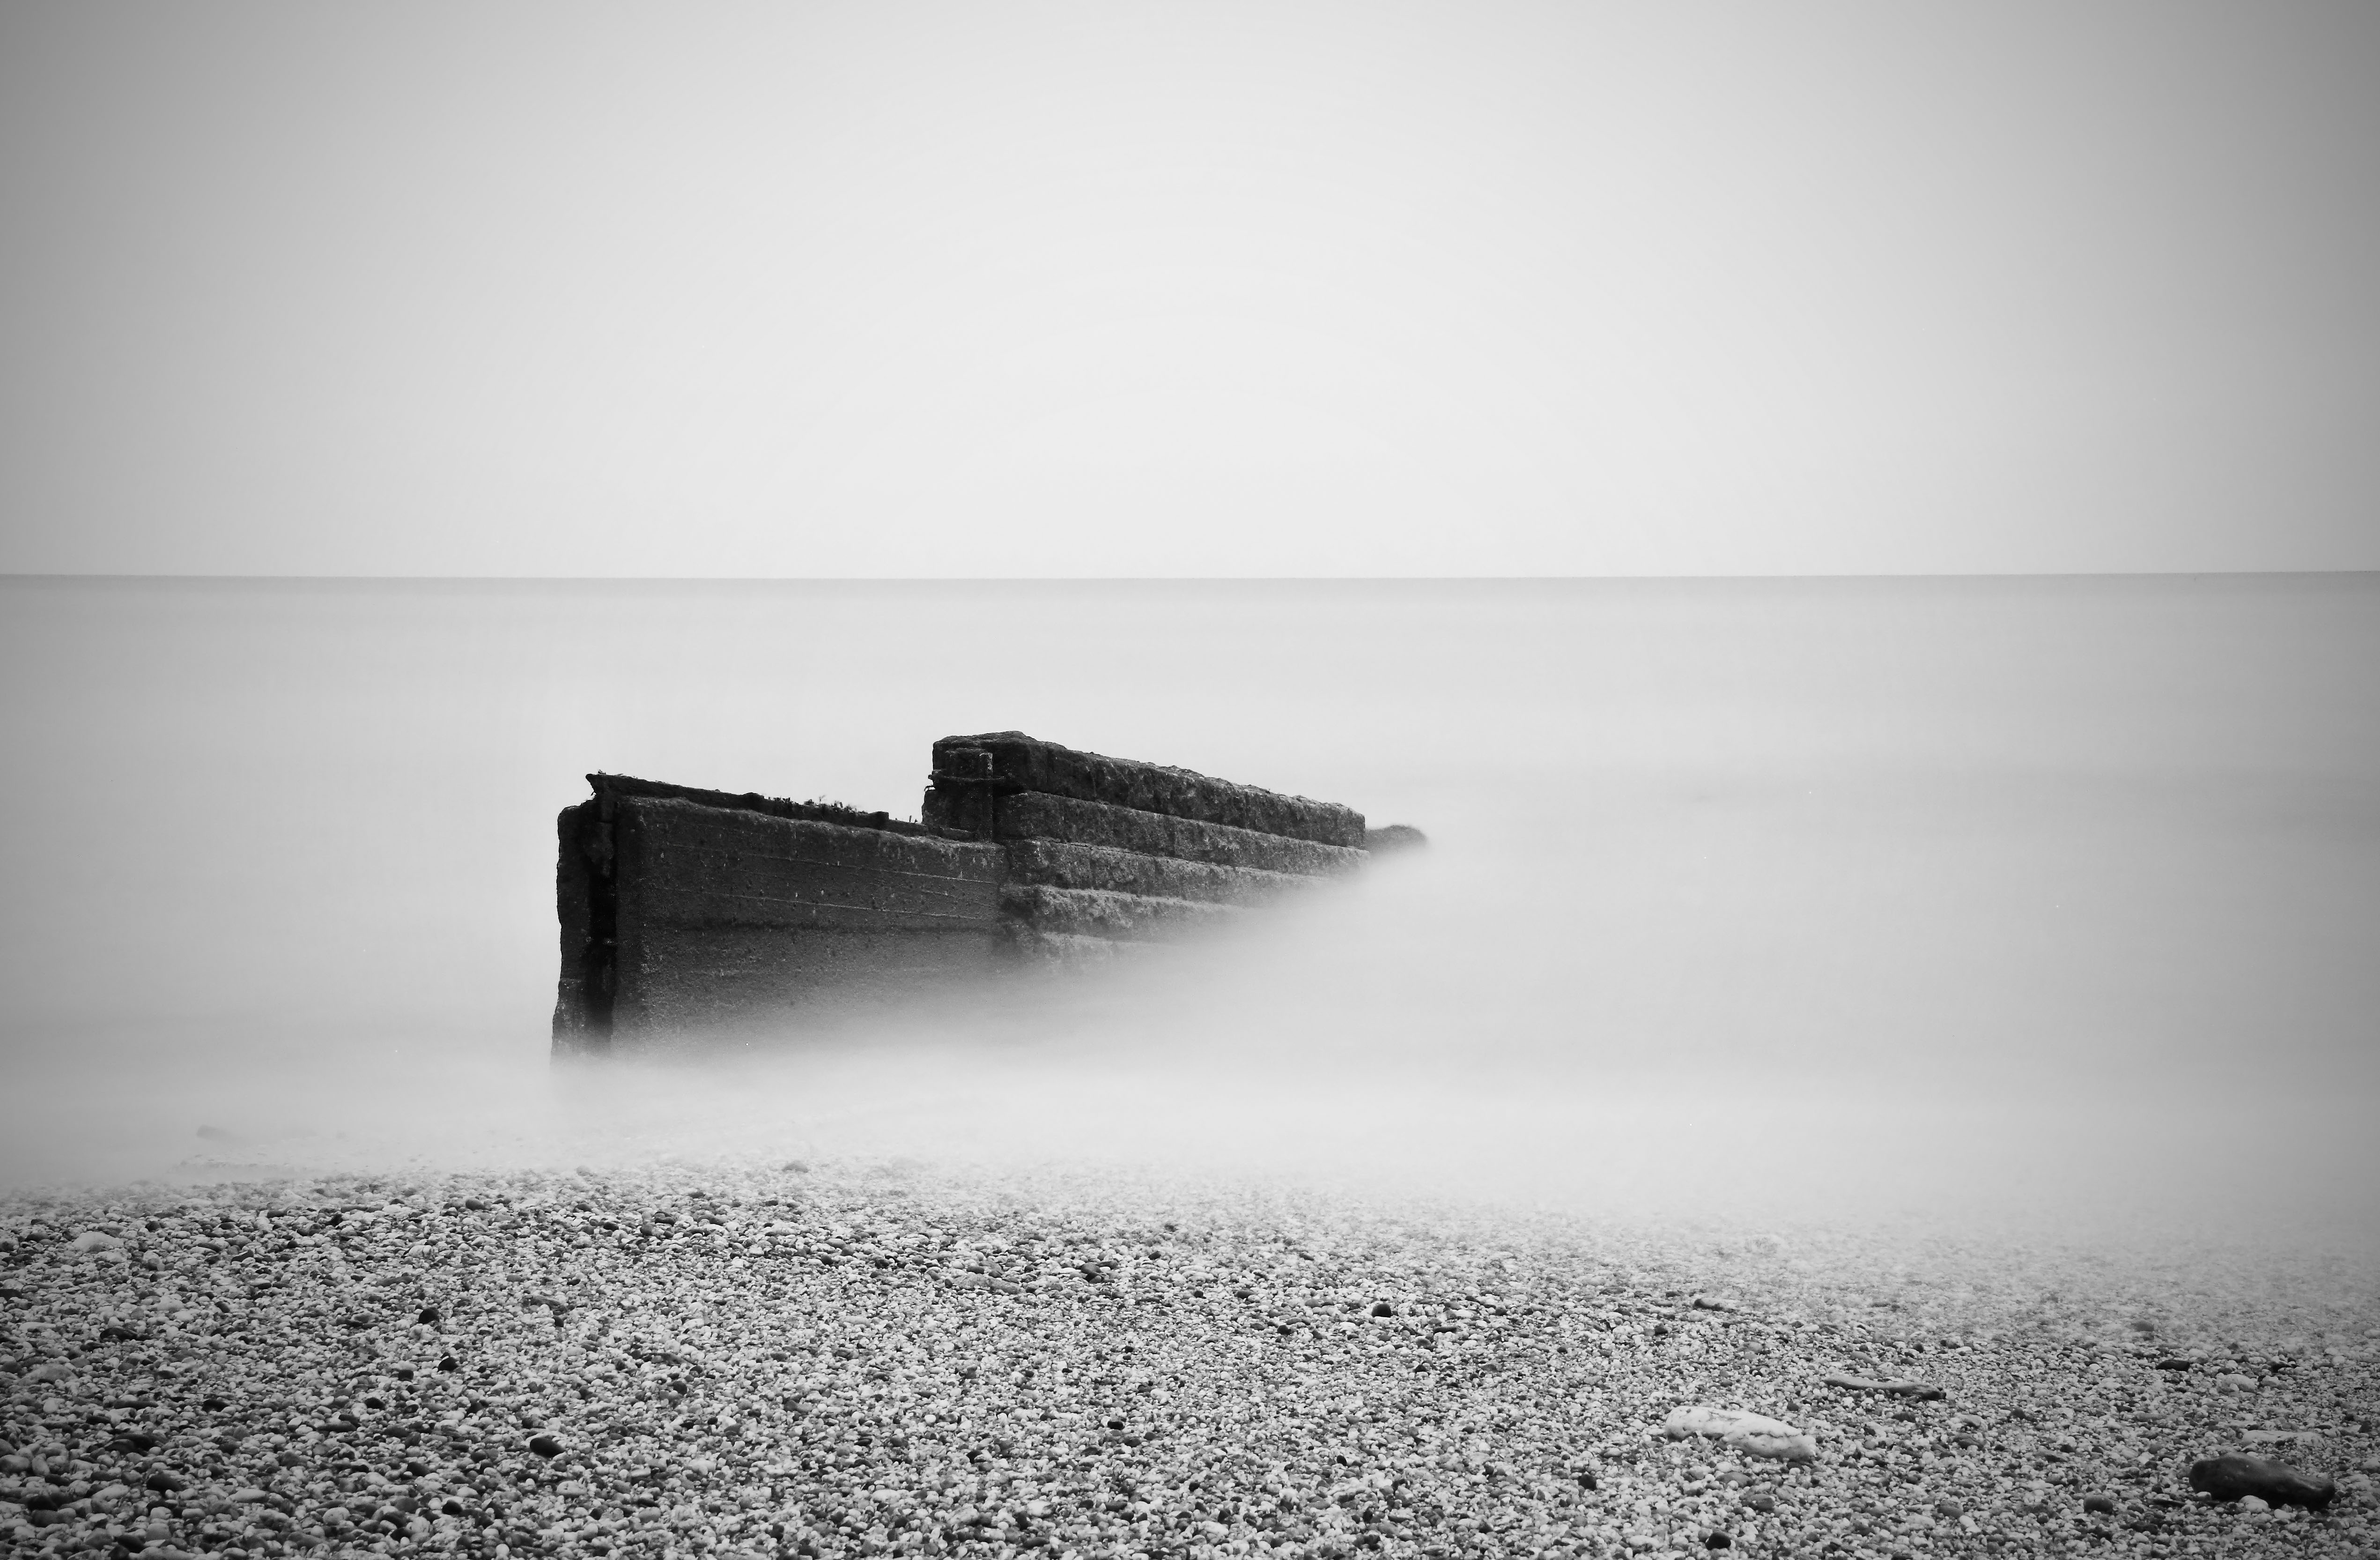 Long exposure seascape photo